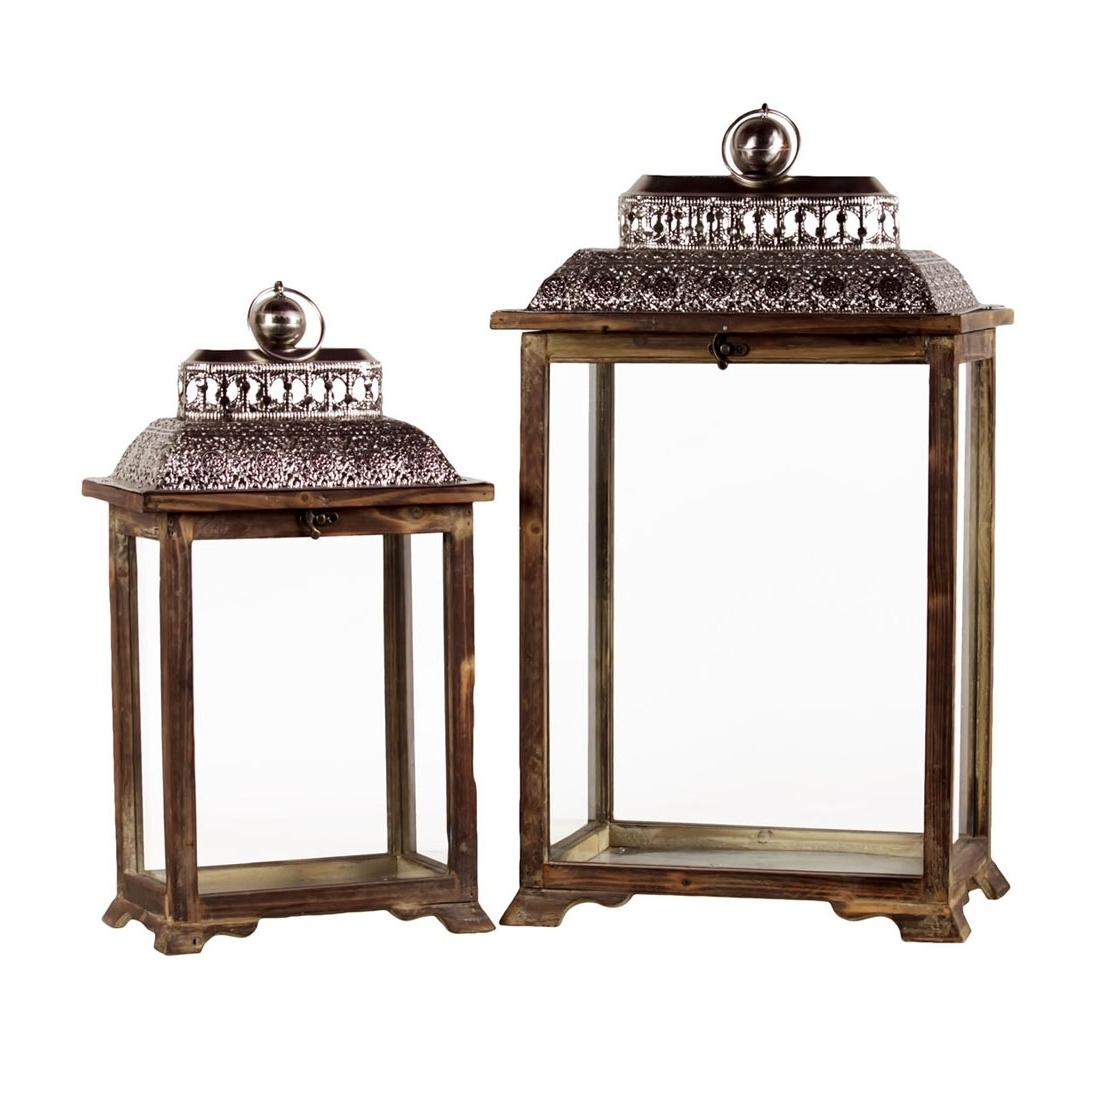 Outdoor Lanterns Within Favorite Set Of Wooden Outdoor Lanterns – Patio Furniture Co (View 17 of 20)